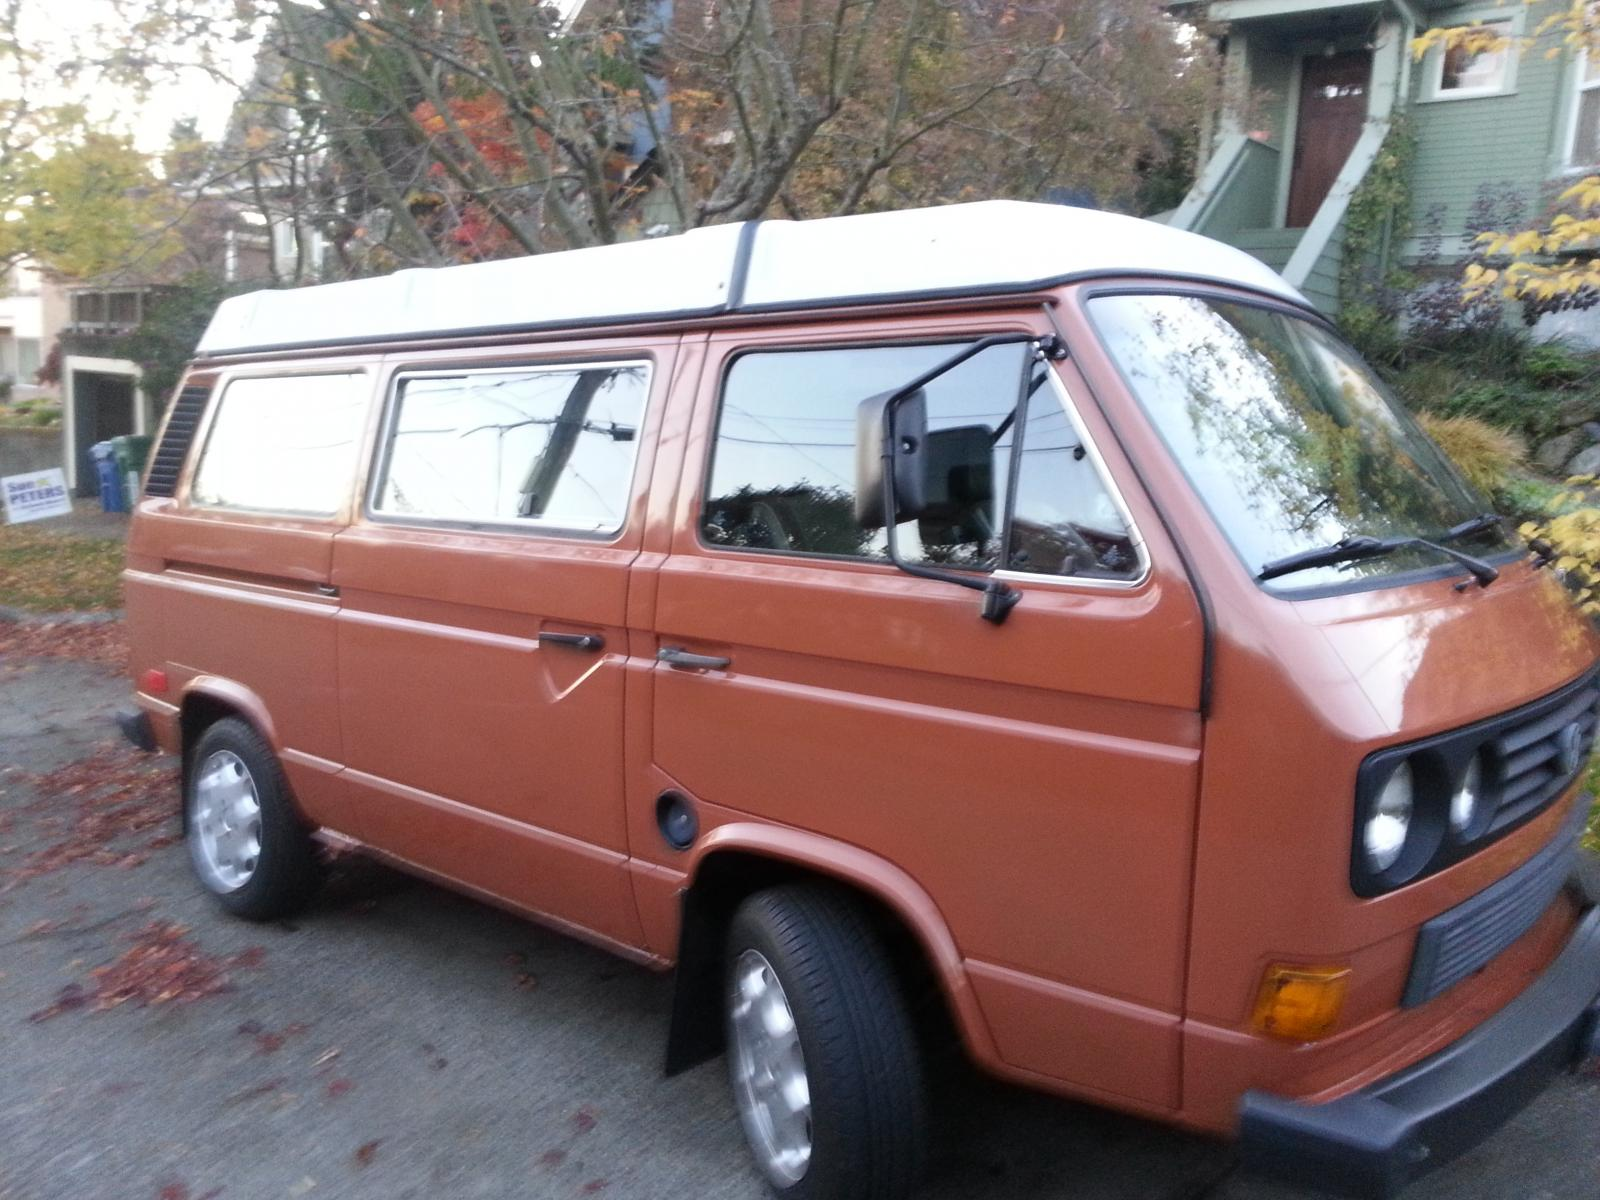 1984 Vanagon Westy: After 10~ Years of Upgrades